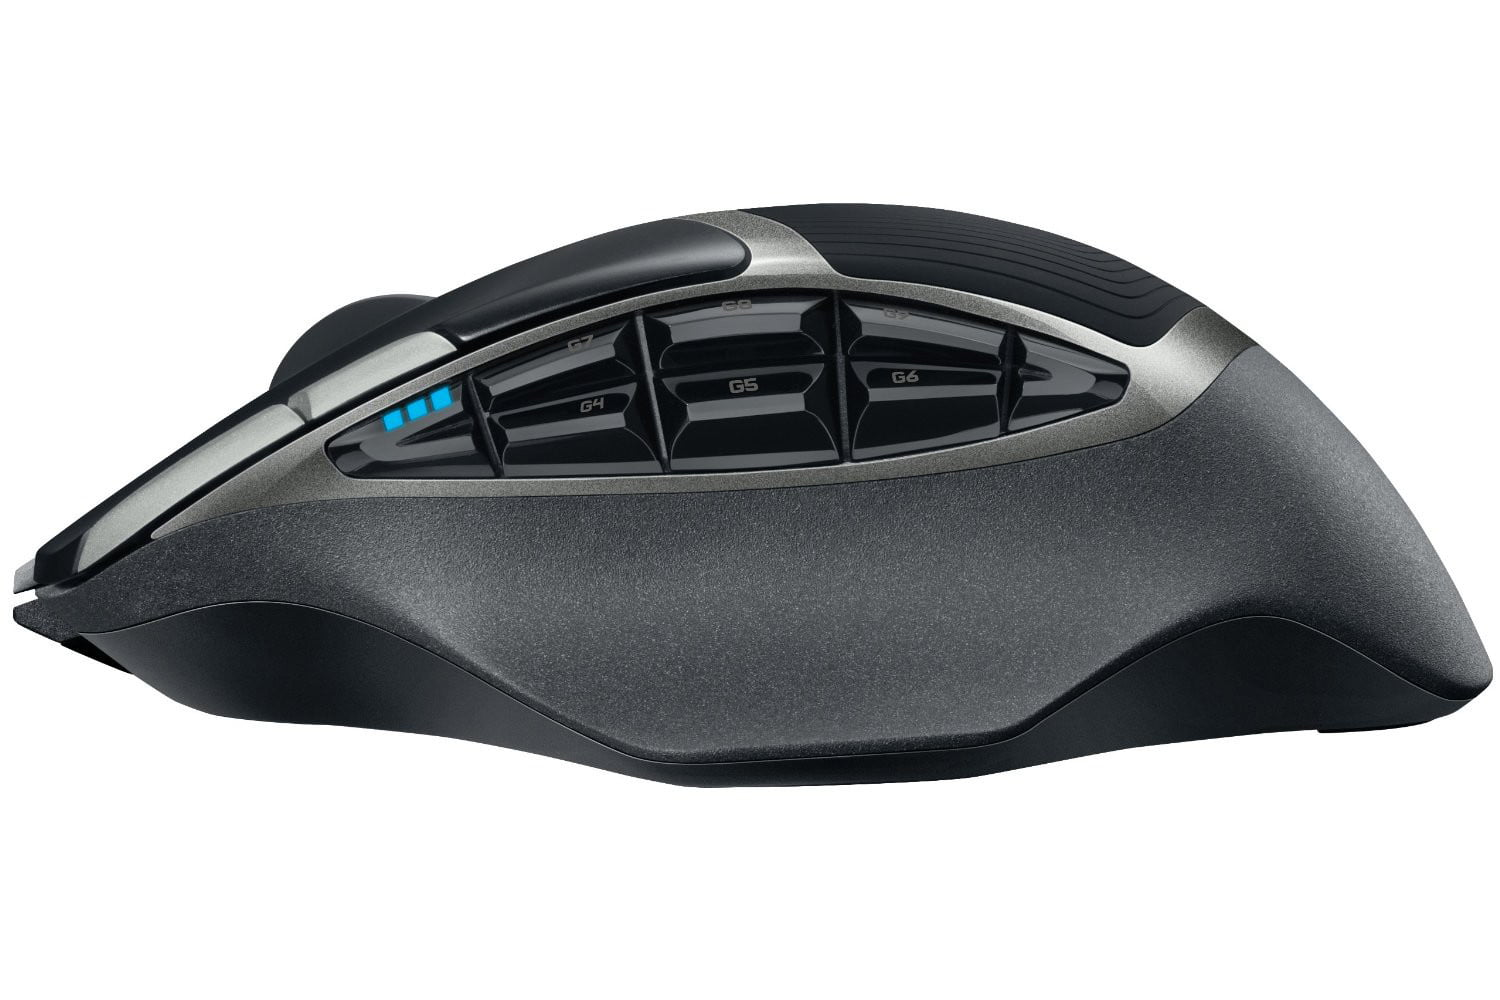 0b7386db067 Logitech G602 Wireless Gaming Mouse Deal: 44 Percent off Normal ...